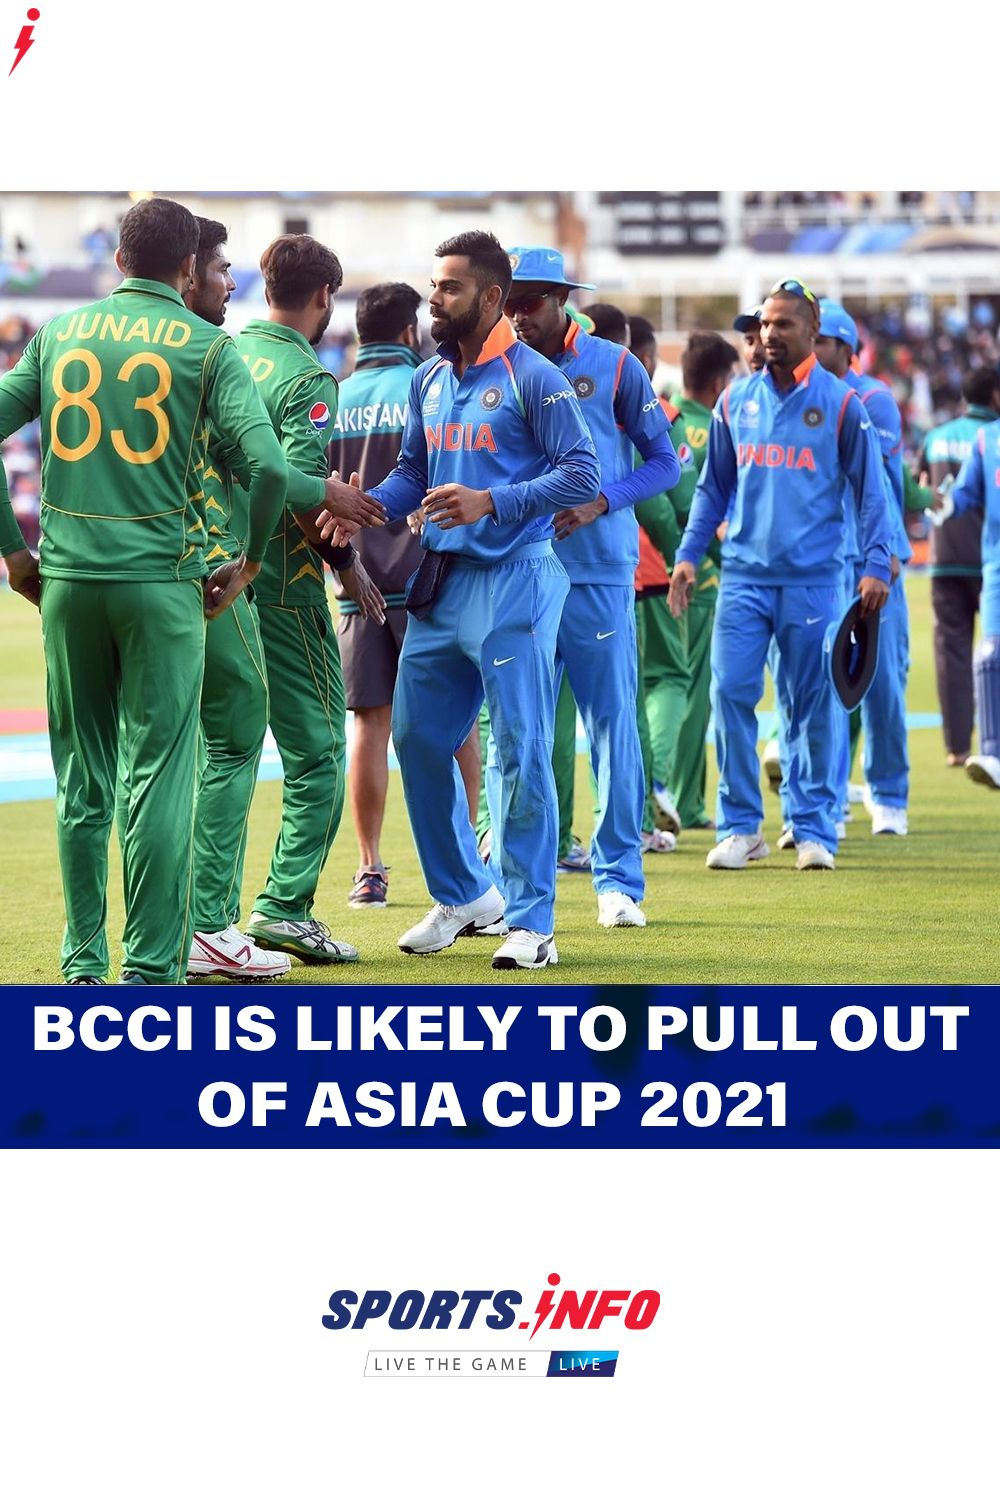 Bcci Is Likely To Pull Out Of Asia Cup 2021 In 2021 Asia Cup Sports Cricket News